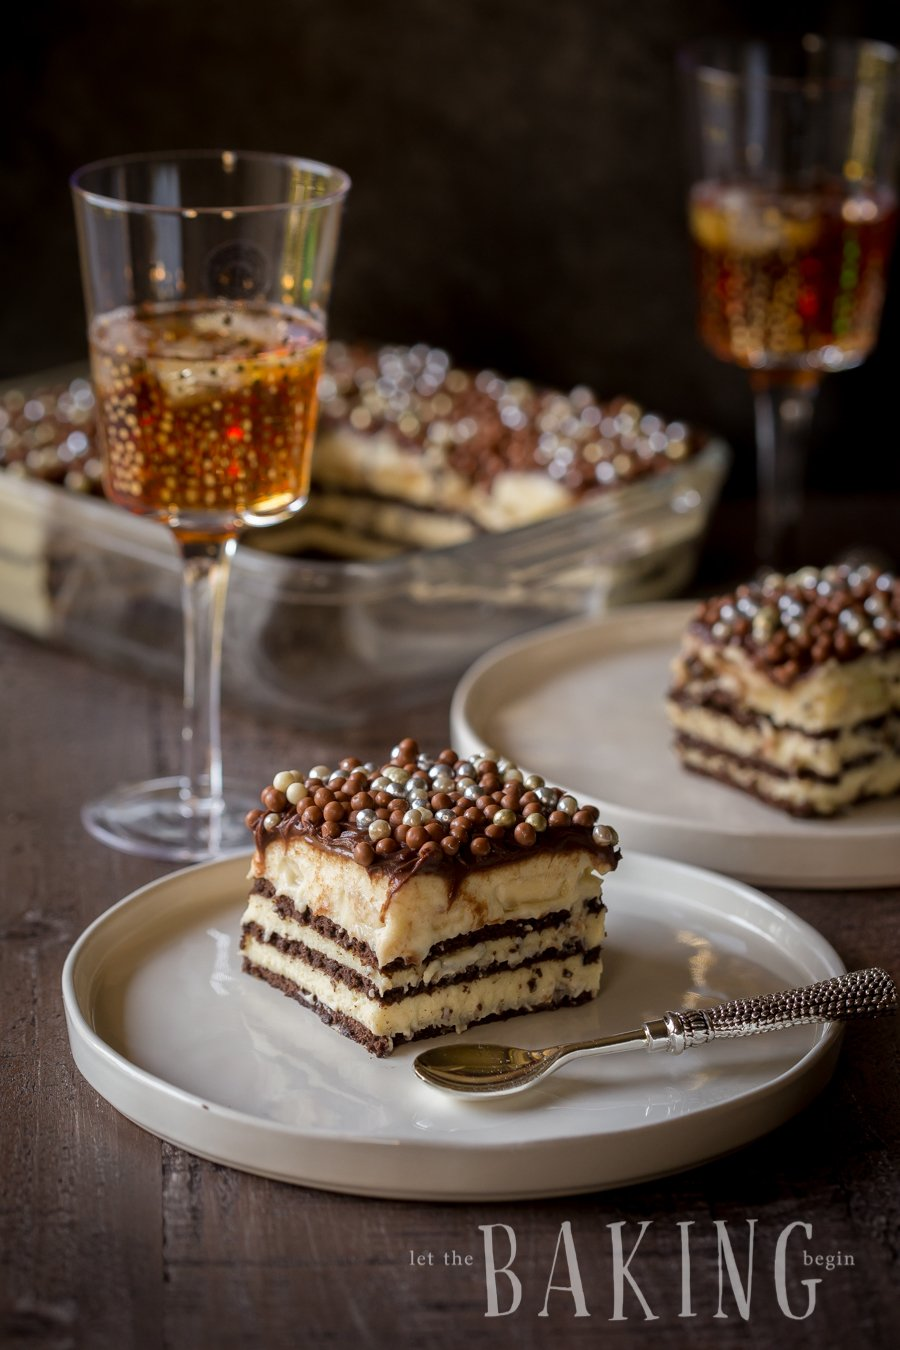 Piece of cake on a white plate topped with pearls on a wooden table.